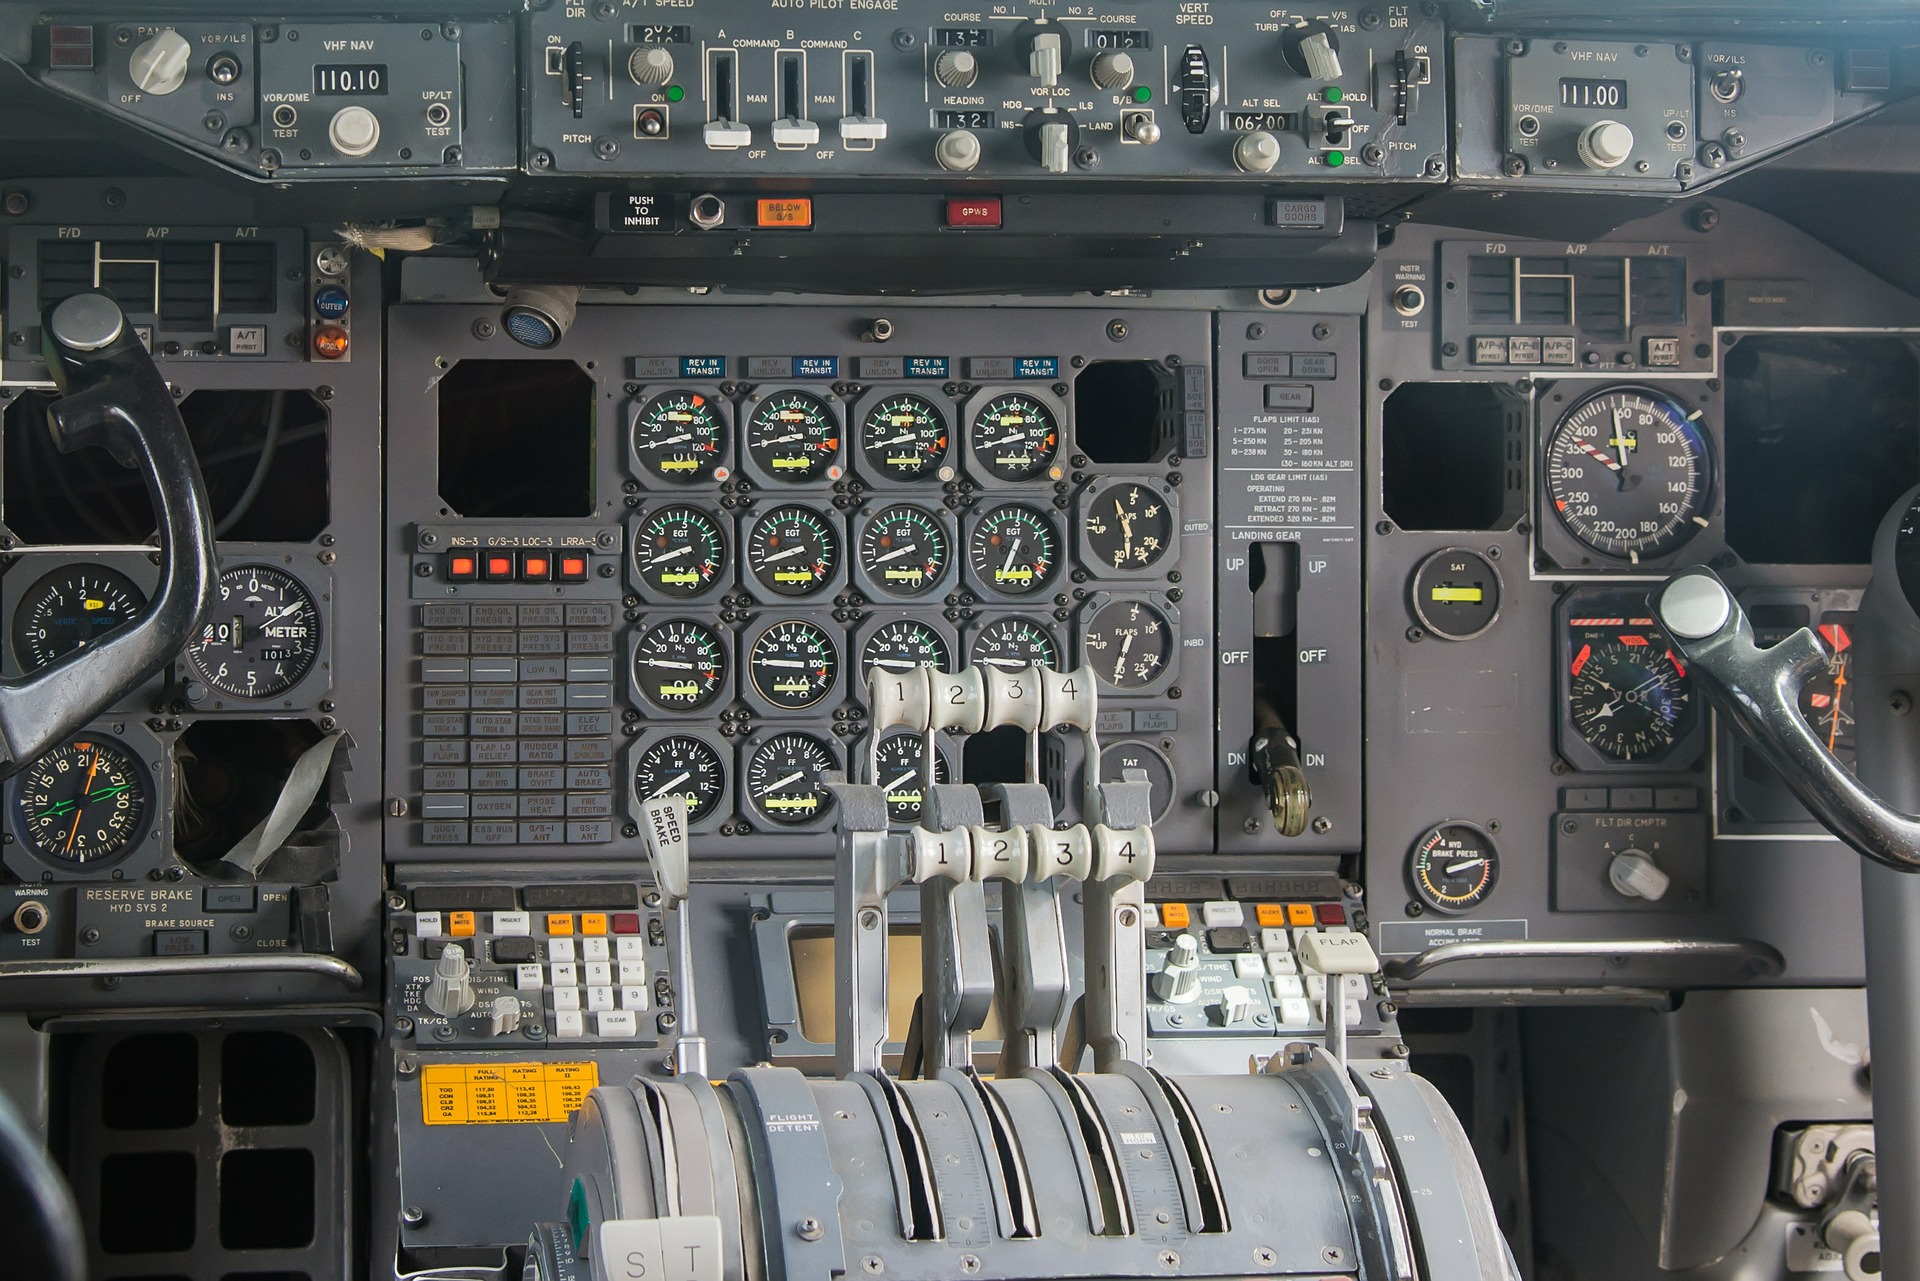 plane, cockpit, aviation slang, pilot lingo, aircraft,